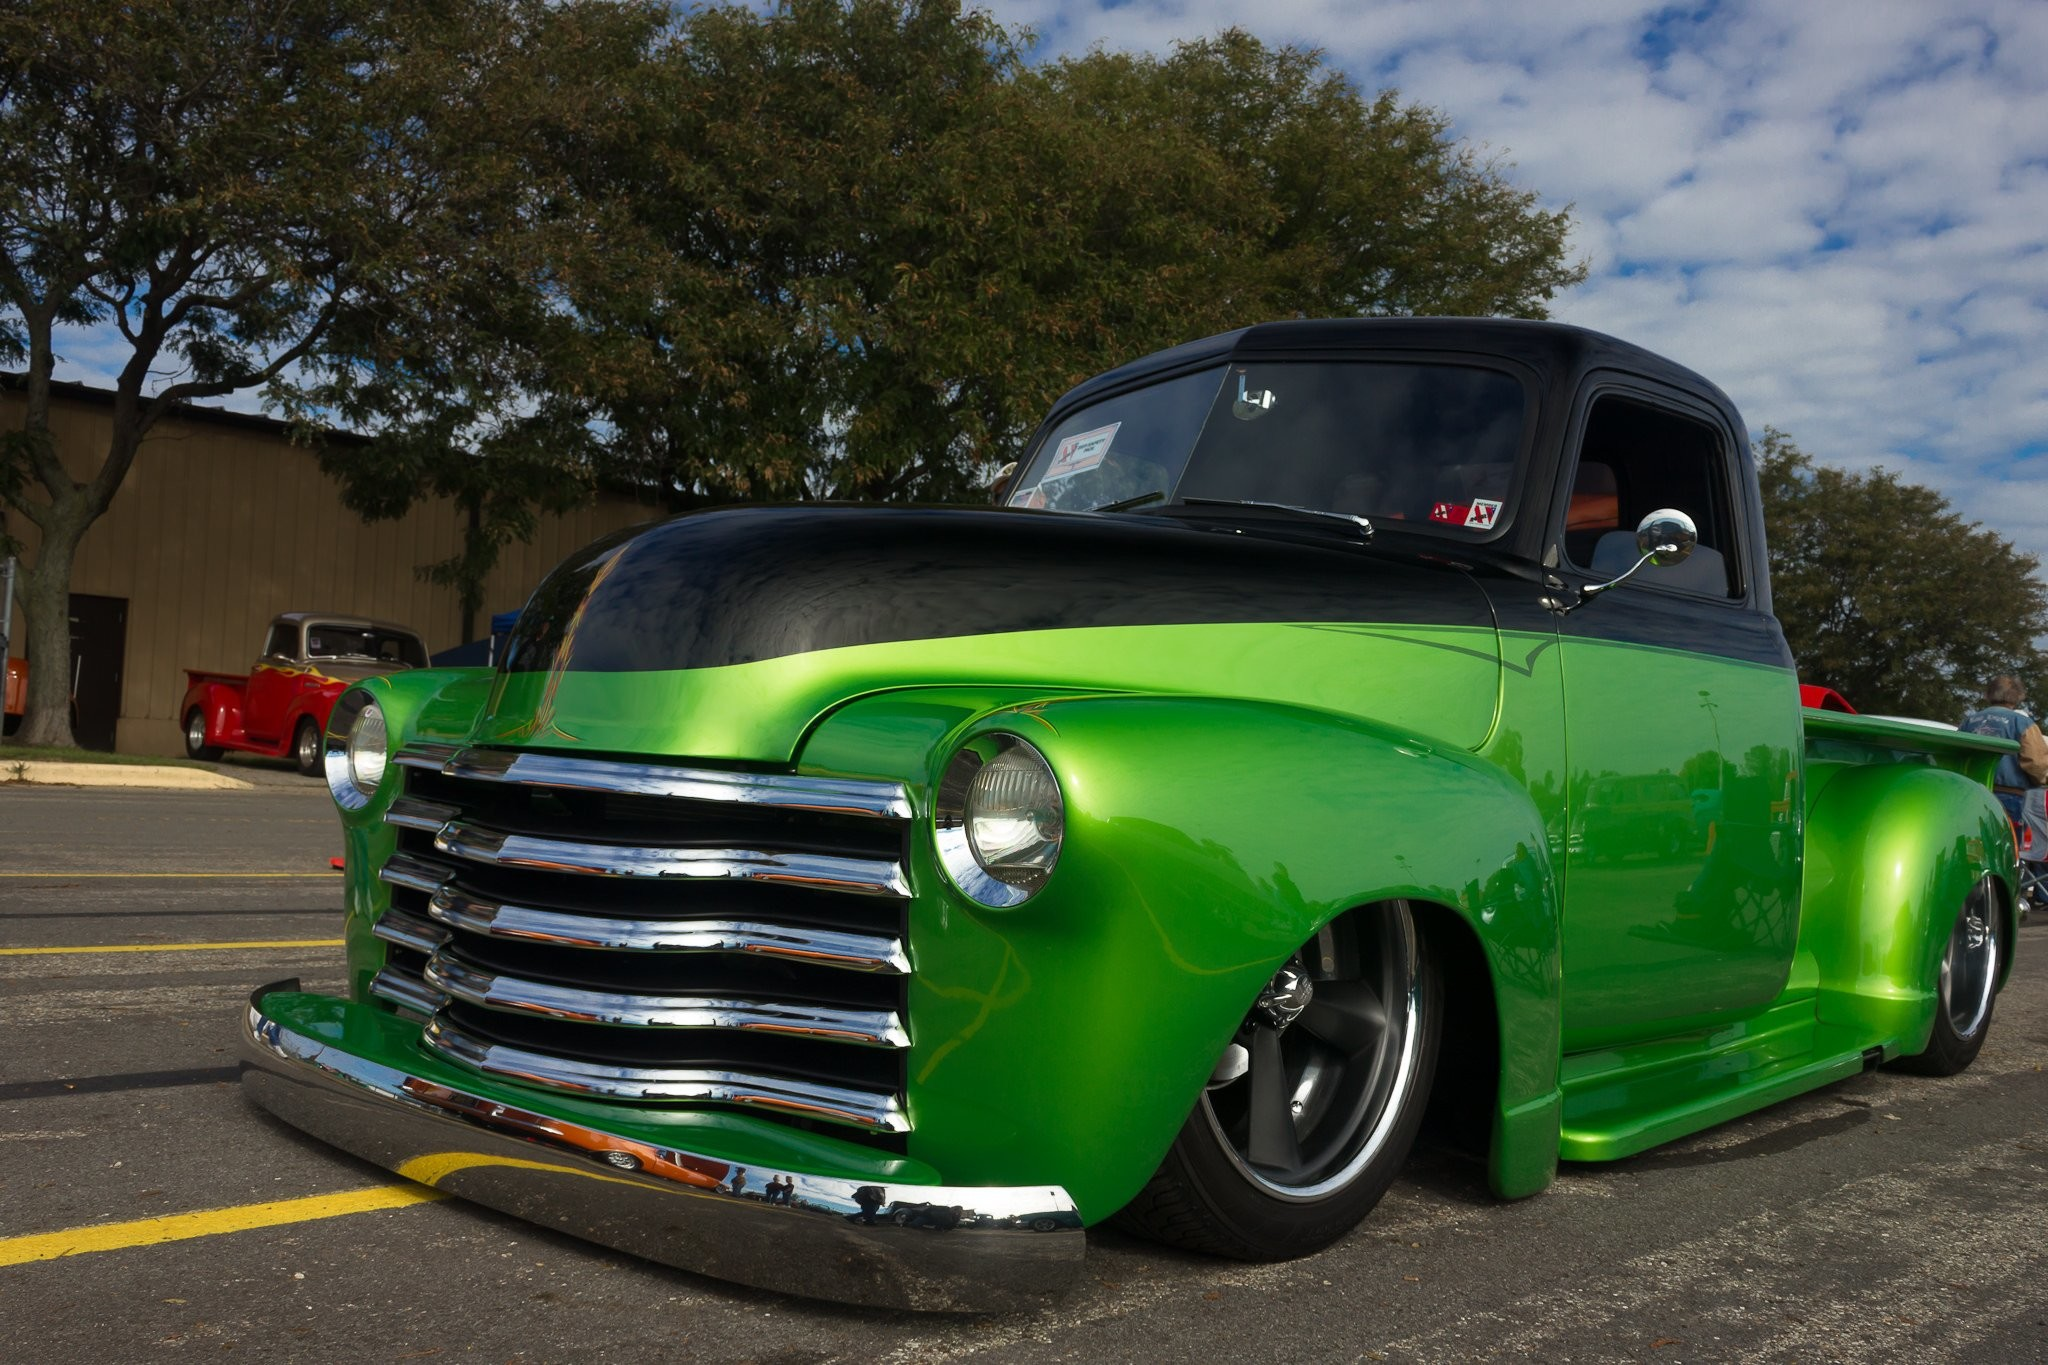 2048x1365 Chevrolet chevy old classic custom cars truck Pickup wallpaper .